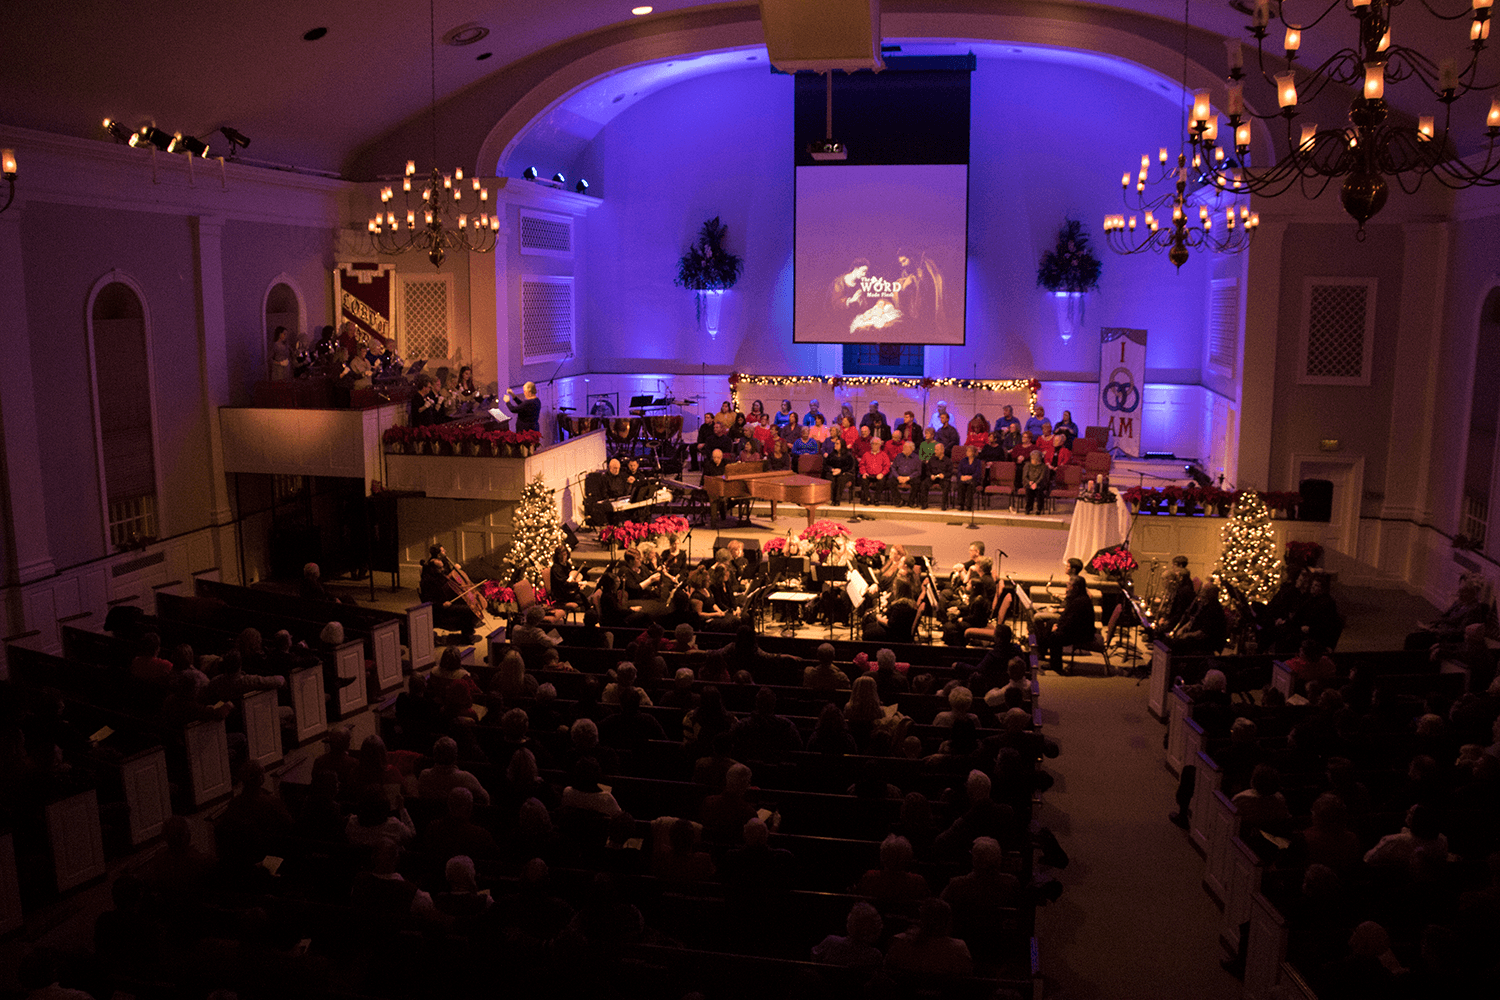 2016.12.11 Christmas Production (18-135mm) 0001.png